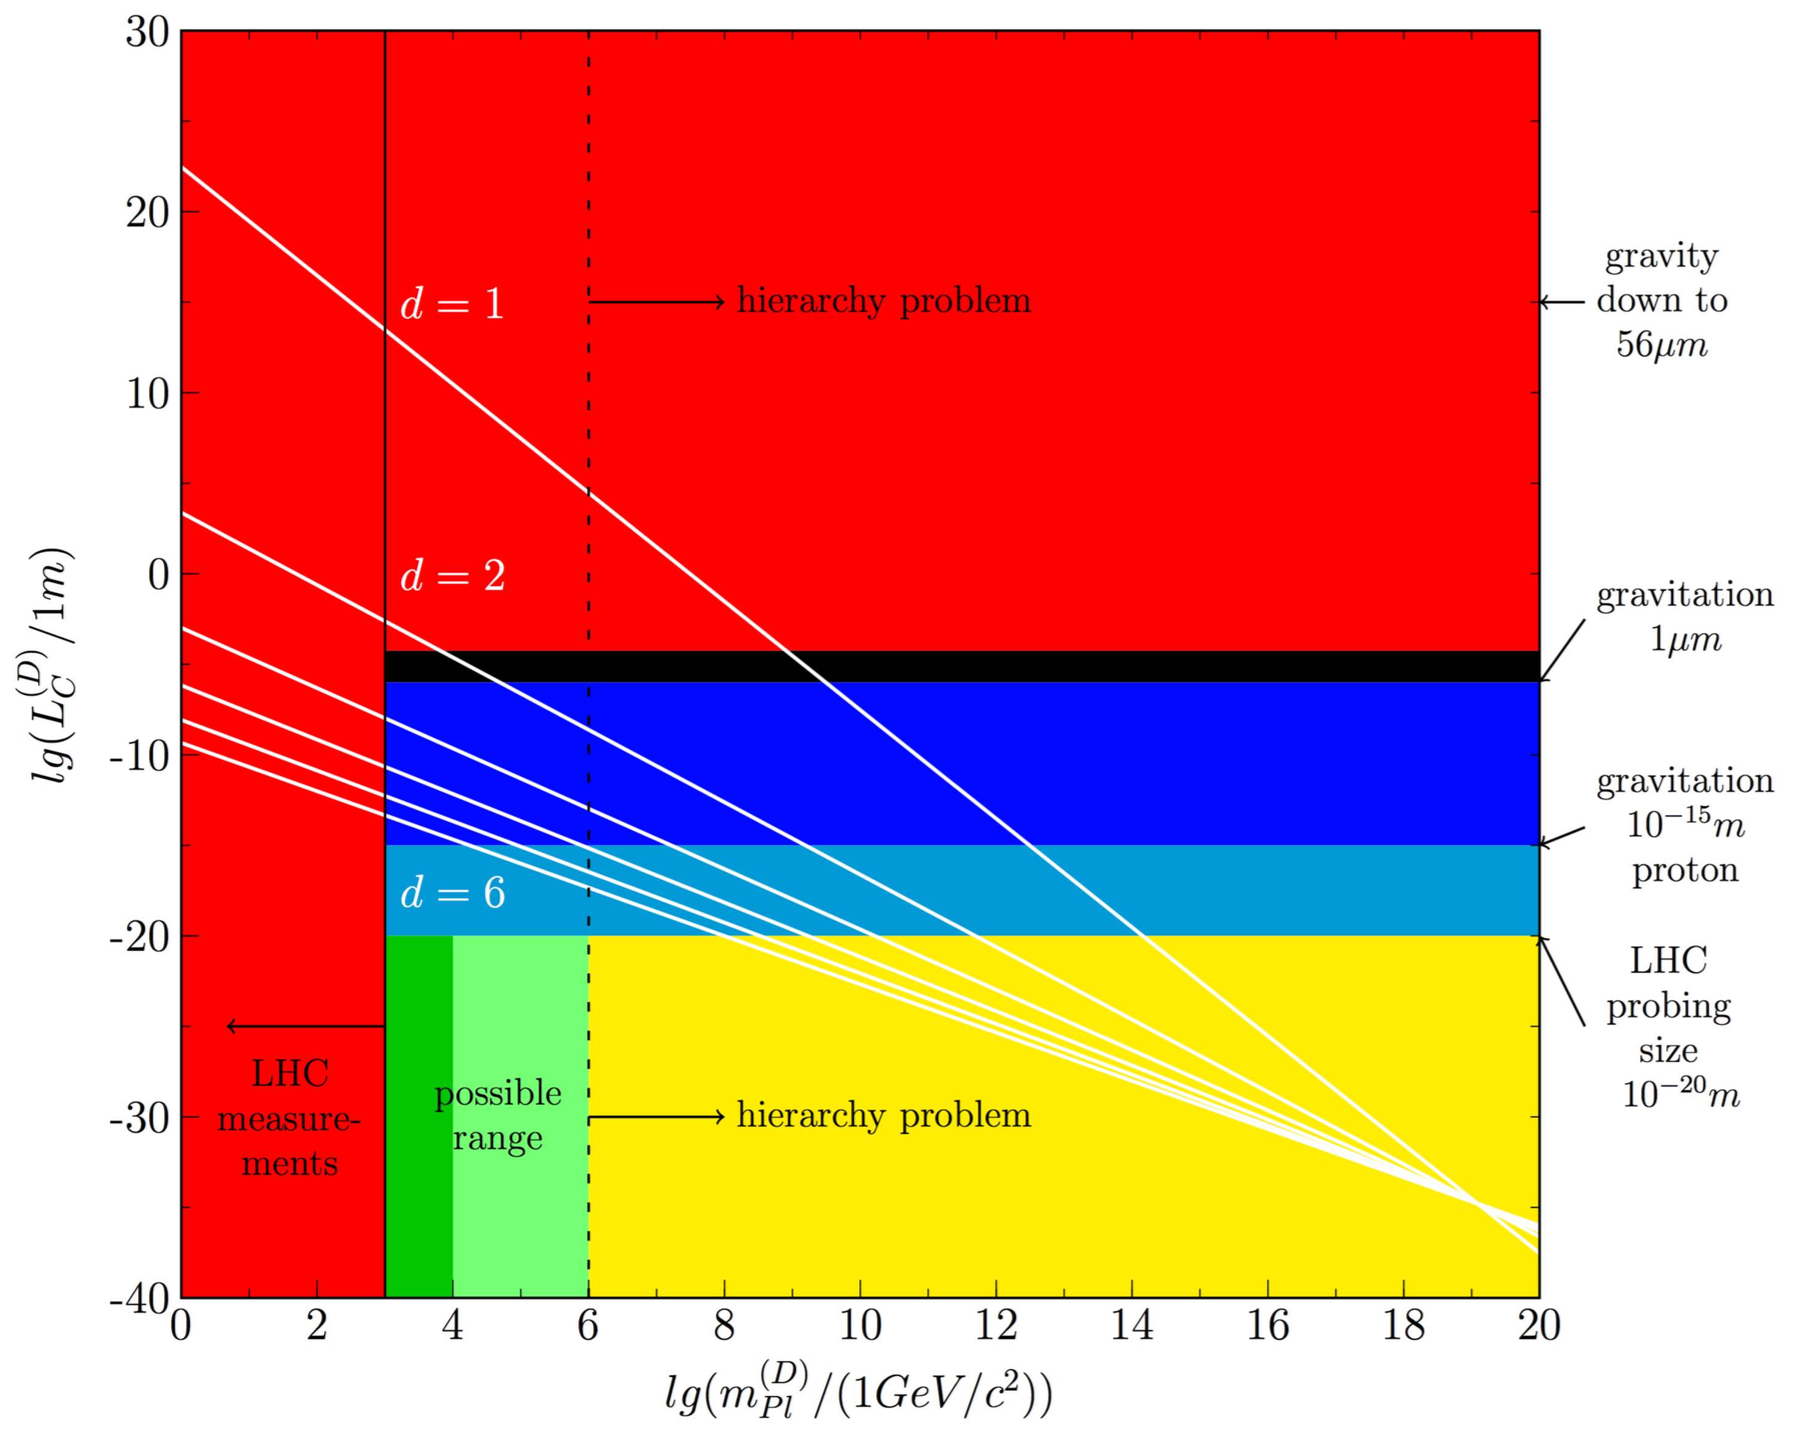 The plot shows the Planck mass in D dimensions The six straight lines in white (d = 1, . . . , 6) are the graphical representation for the extra dimensions beyond the 4 established dimensions. D = 6 corresponds to the case of superstring (supersymmetry) that is formulated in 10 dimensions. The most striking results is that none of the white lines d = 1, ..., 6 intersect the green areas representing solutions for the hierarchy problem where the weak force and gravity are unified. Therefore, higher dimensions are not a solution. © 2017 Hauser and Dröscher